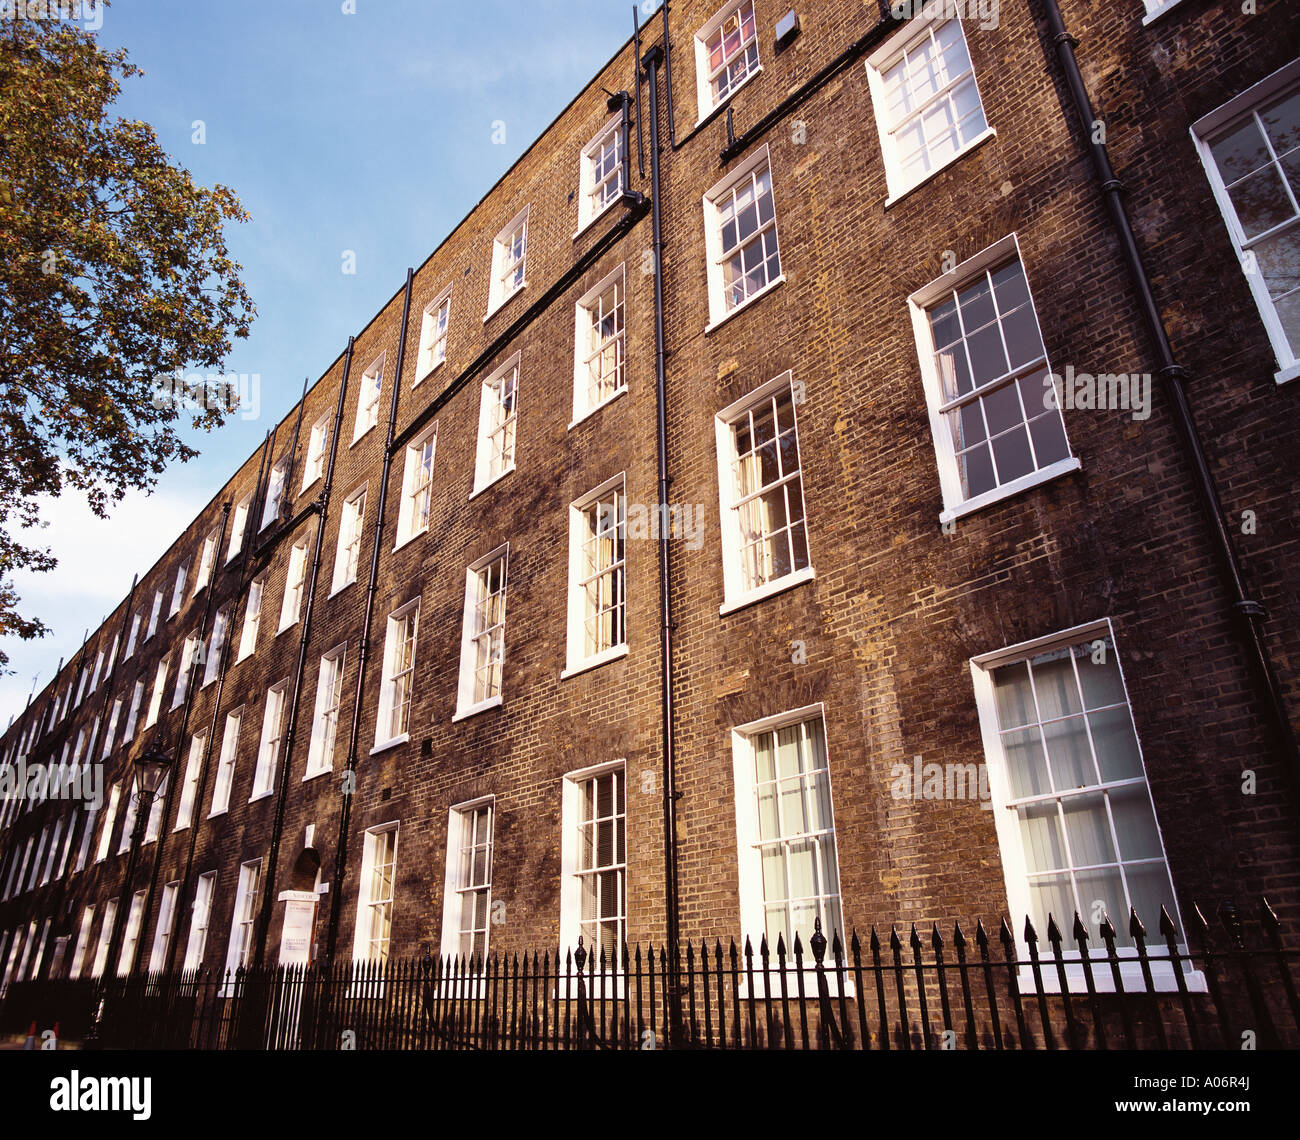 Barrister's Offices at Grays Inn Fields London - Stock Image